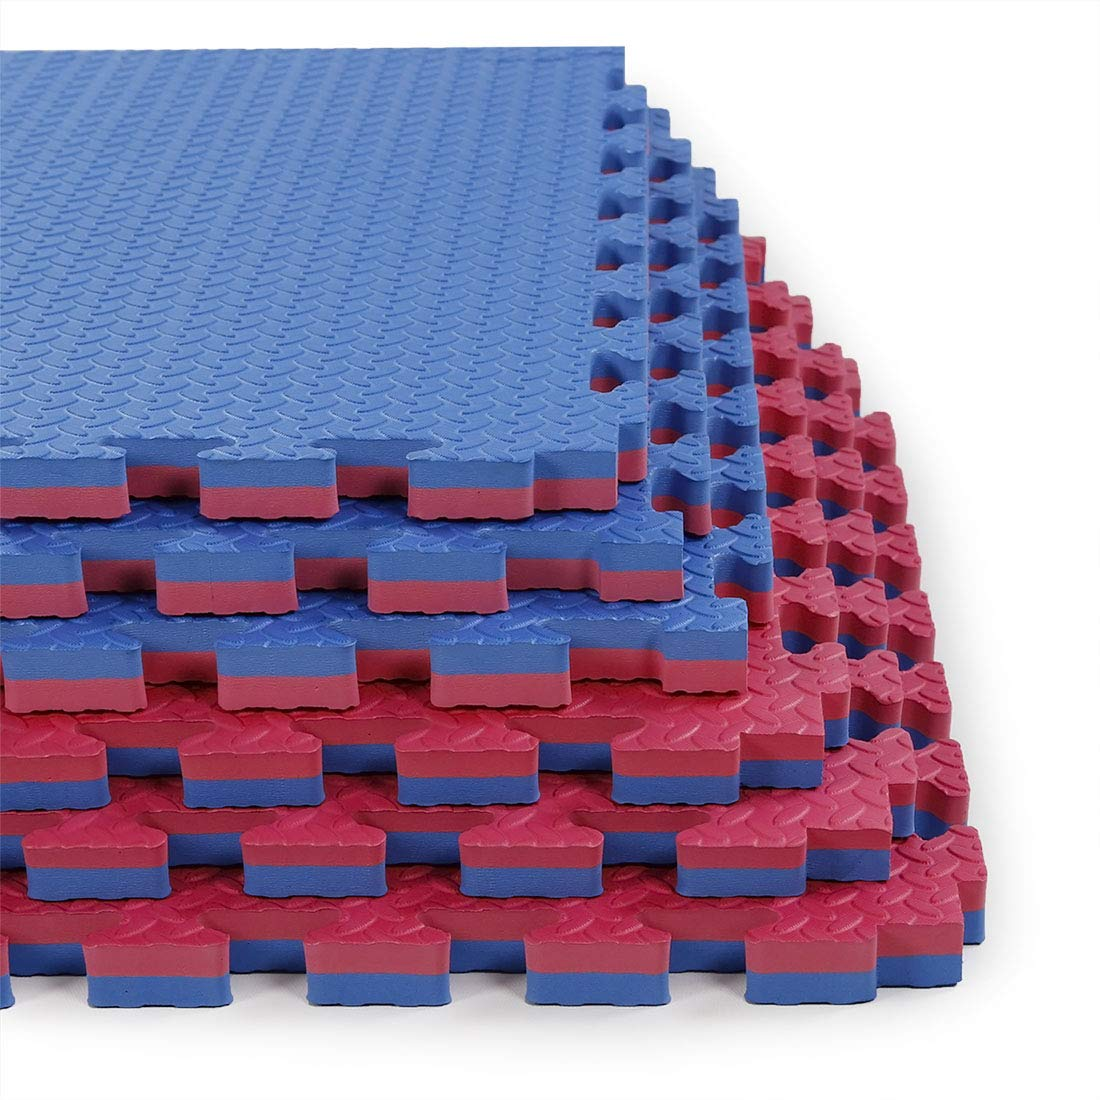 Clevr Reversible 1'' Thick Interlocking EVA Gym Foam Floor Mat Tiles (24'' x 24''), Protective Flooring for Gym Equipment, 1 Year Limited Warranty, Steel Pattern,12 pcs, 48 sqft, Blue/Red